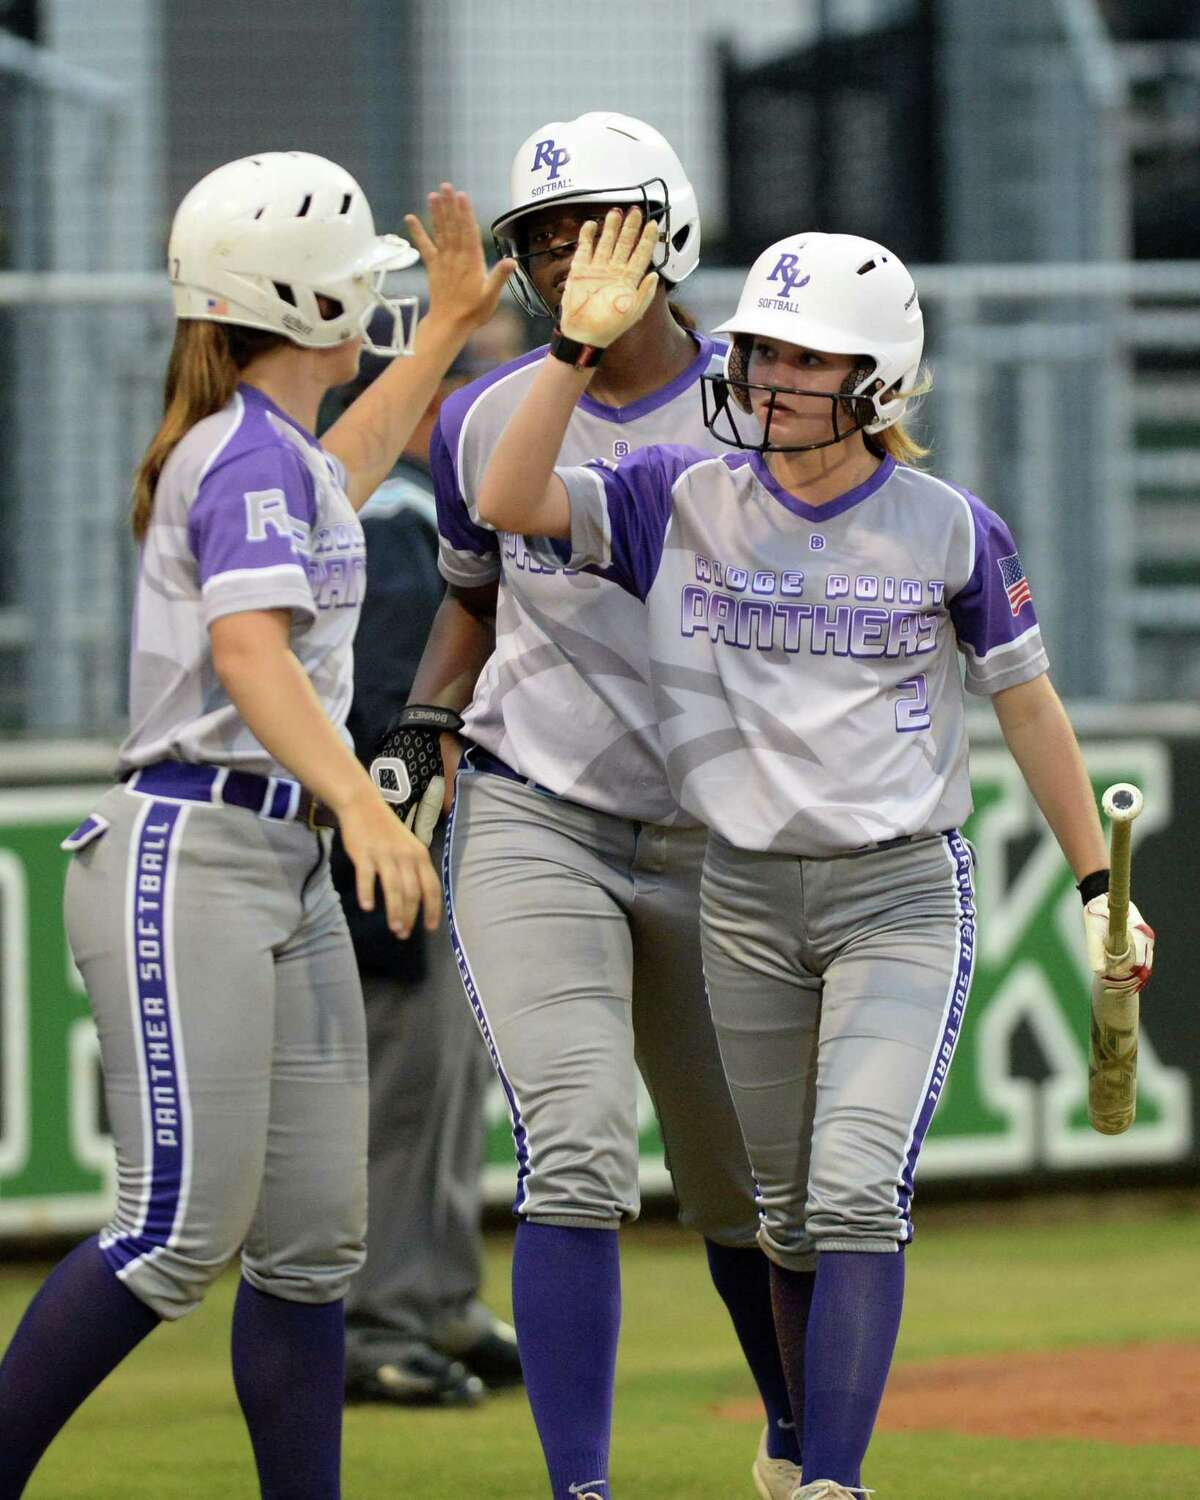 Payton Jackson (7), Taylor Roman (8), and Malyn Simmons (2) of Ridge Point celebrate after scoring on a hit by Maggie Darr (22) during the third inning of a Class 6A Region III playoff softball game between the Ridge Point Panthers and Cy Creek Cougars on Wednesday, May 1, 2019 at Mayde Creek High School, Katy, TX.